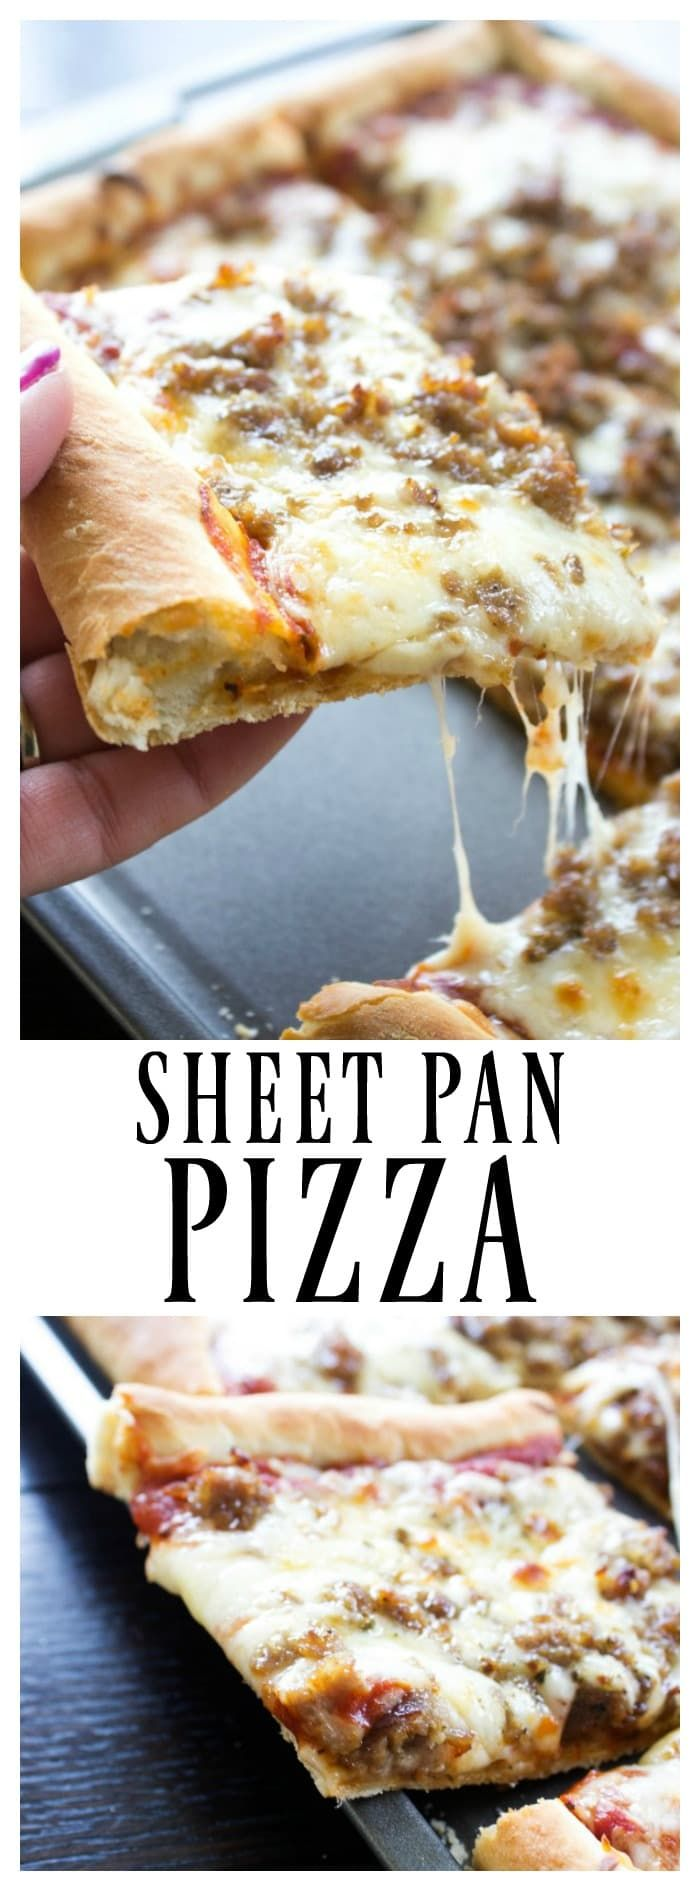 Sheet-pan-pizza-pin - eta:  made this, very easy, very tasty crust. I didn't have bread flour so just used regular flour, still good! Def a keeper will def like again.  JMc